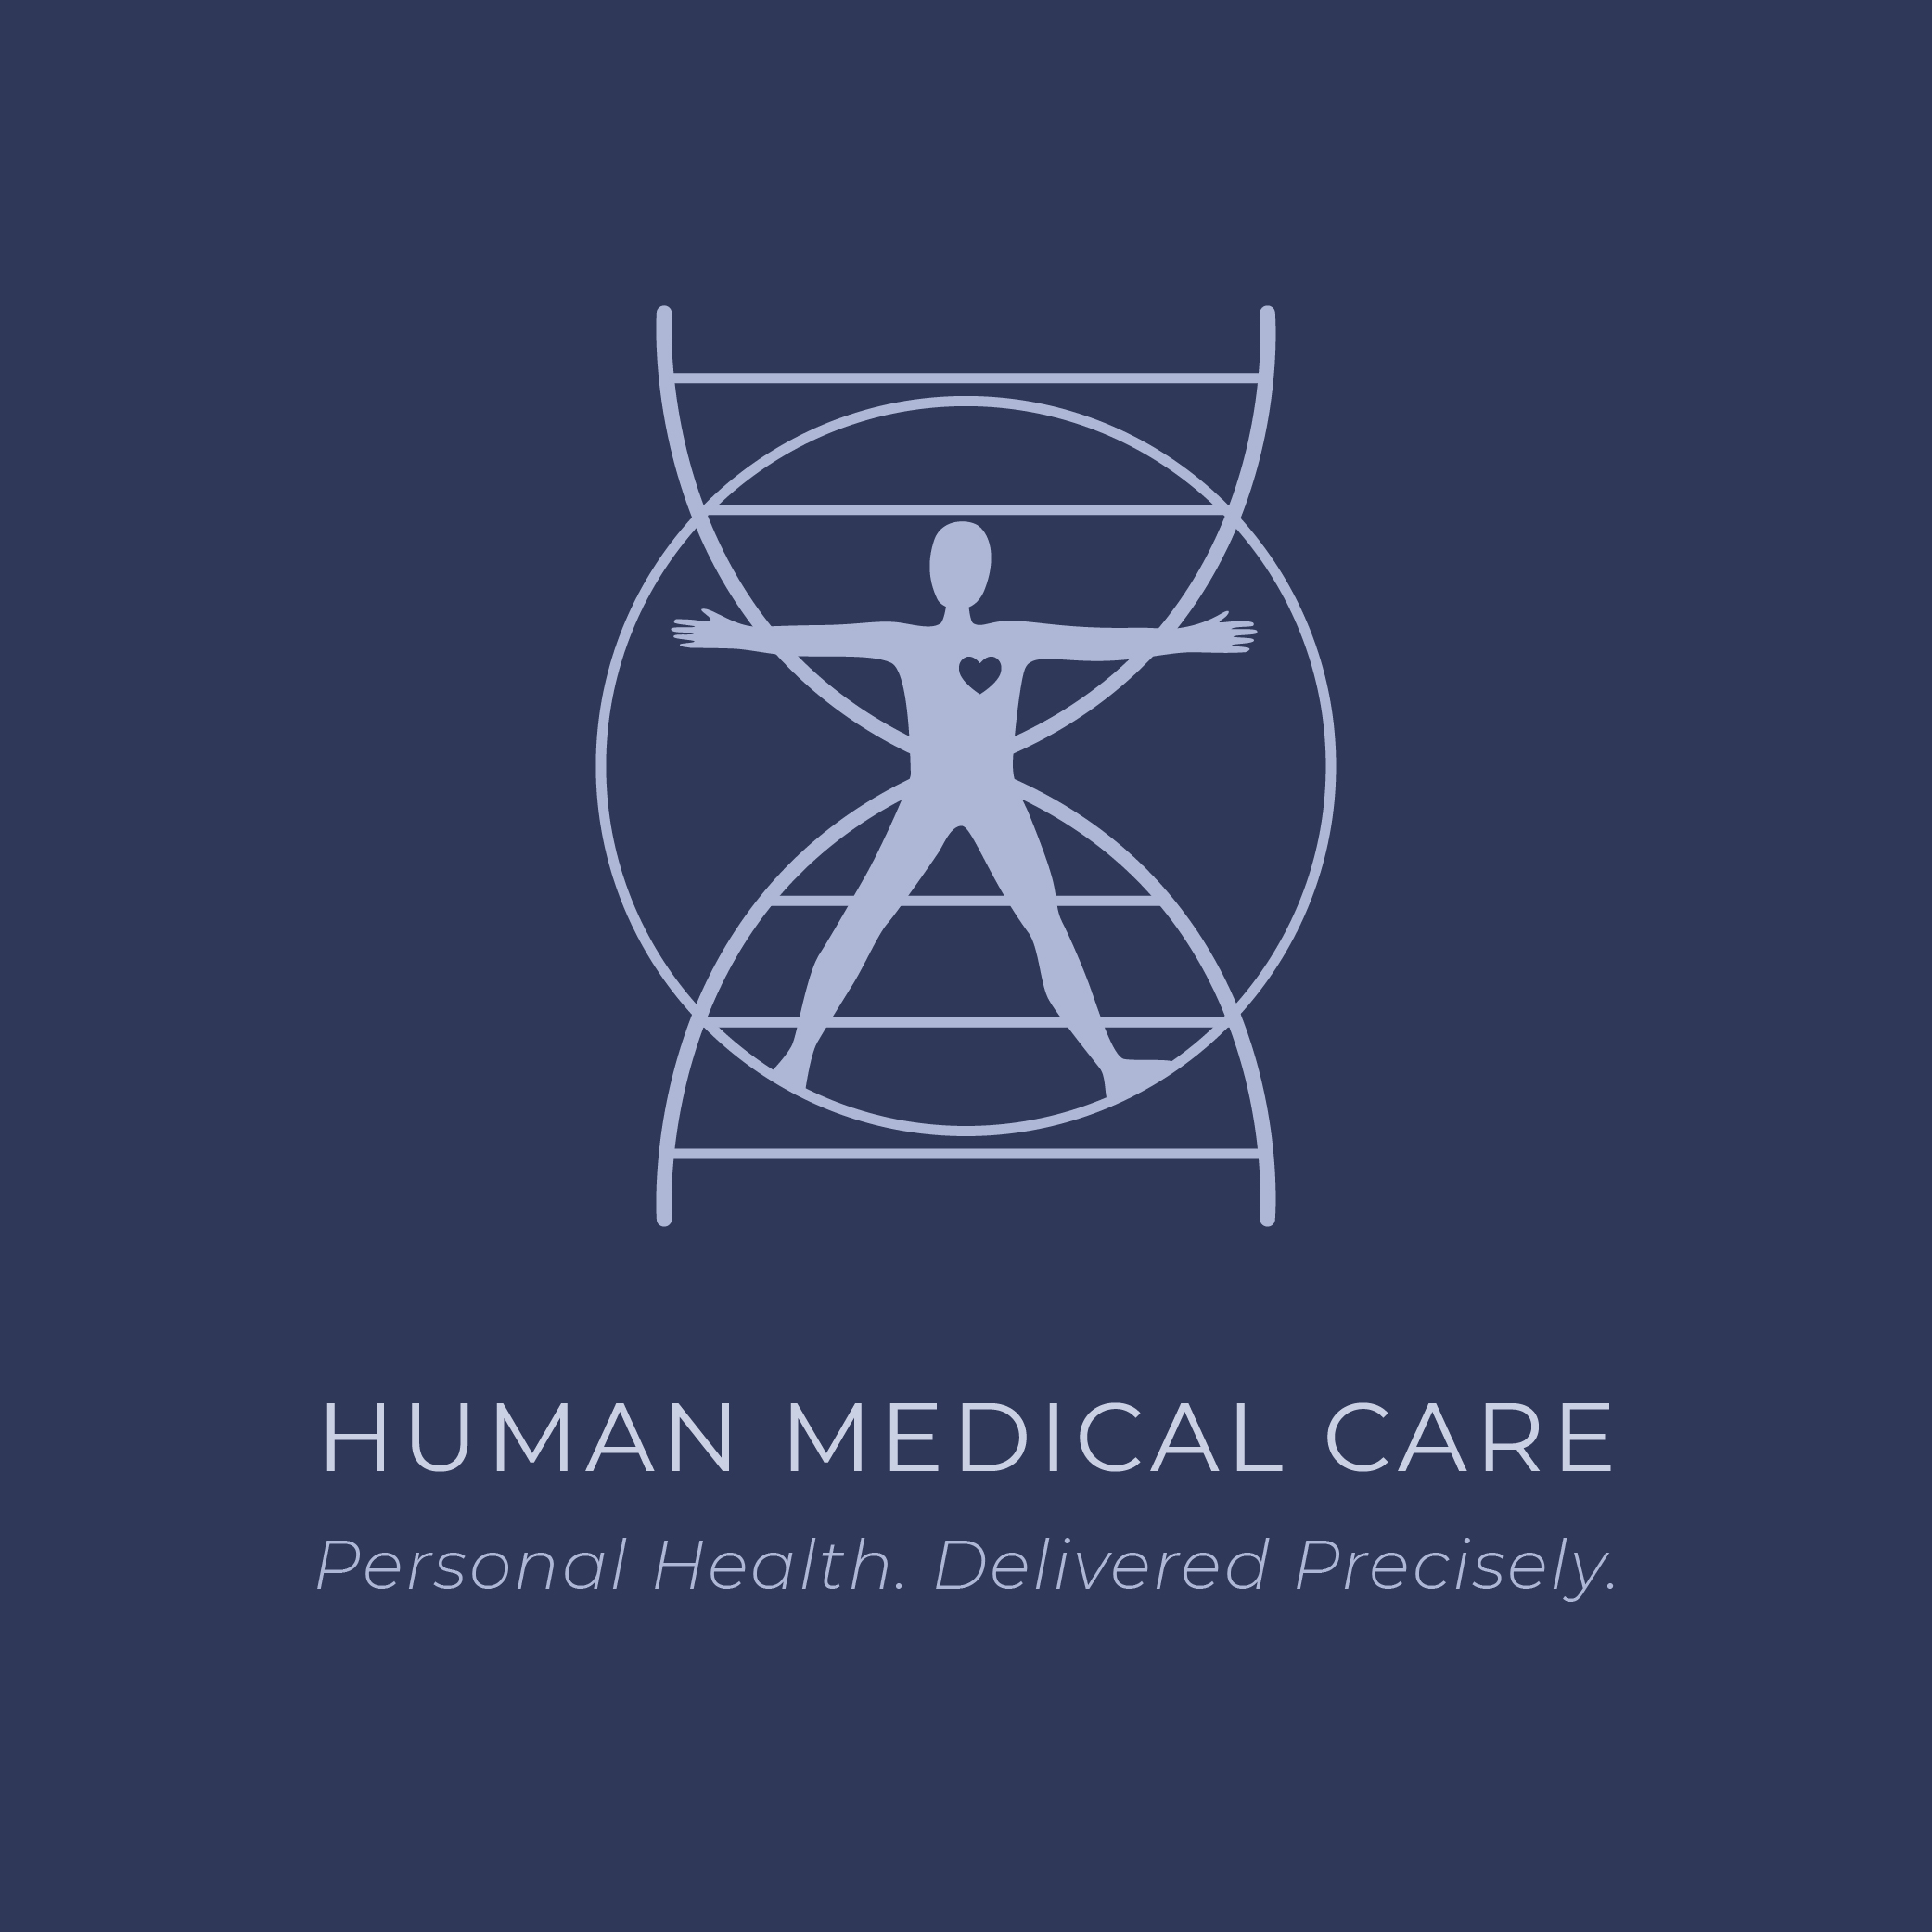 LOGO HUMAN MEDICAL CARE FINAL copy-15.jpg